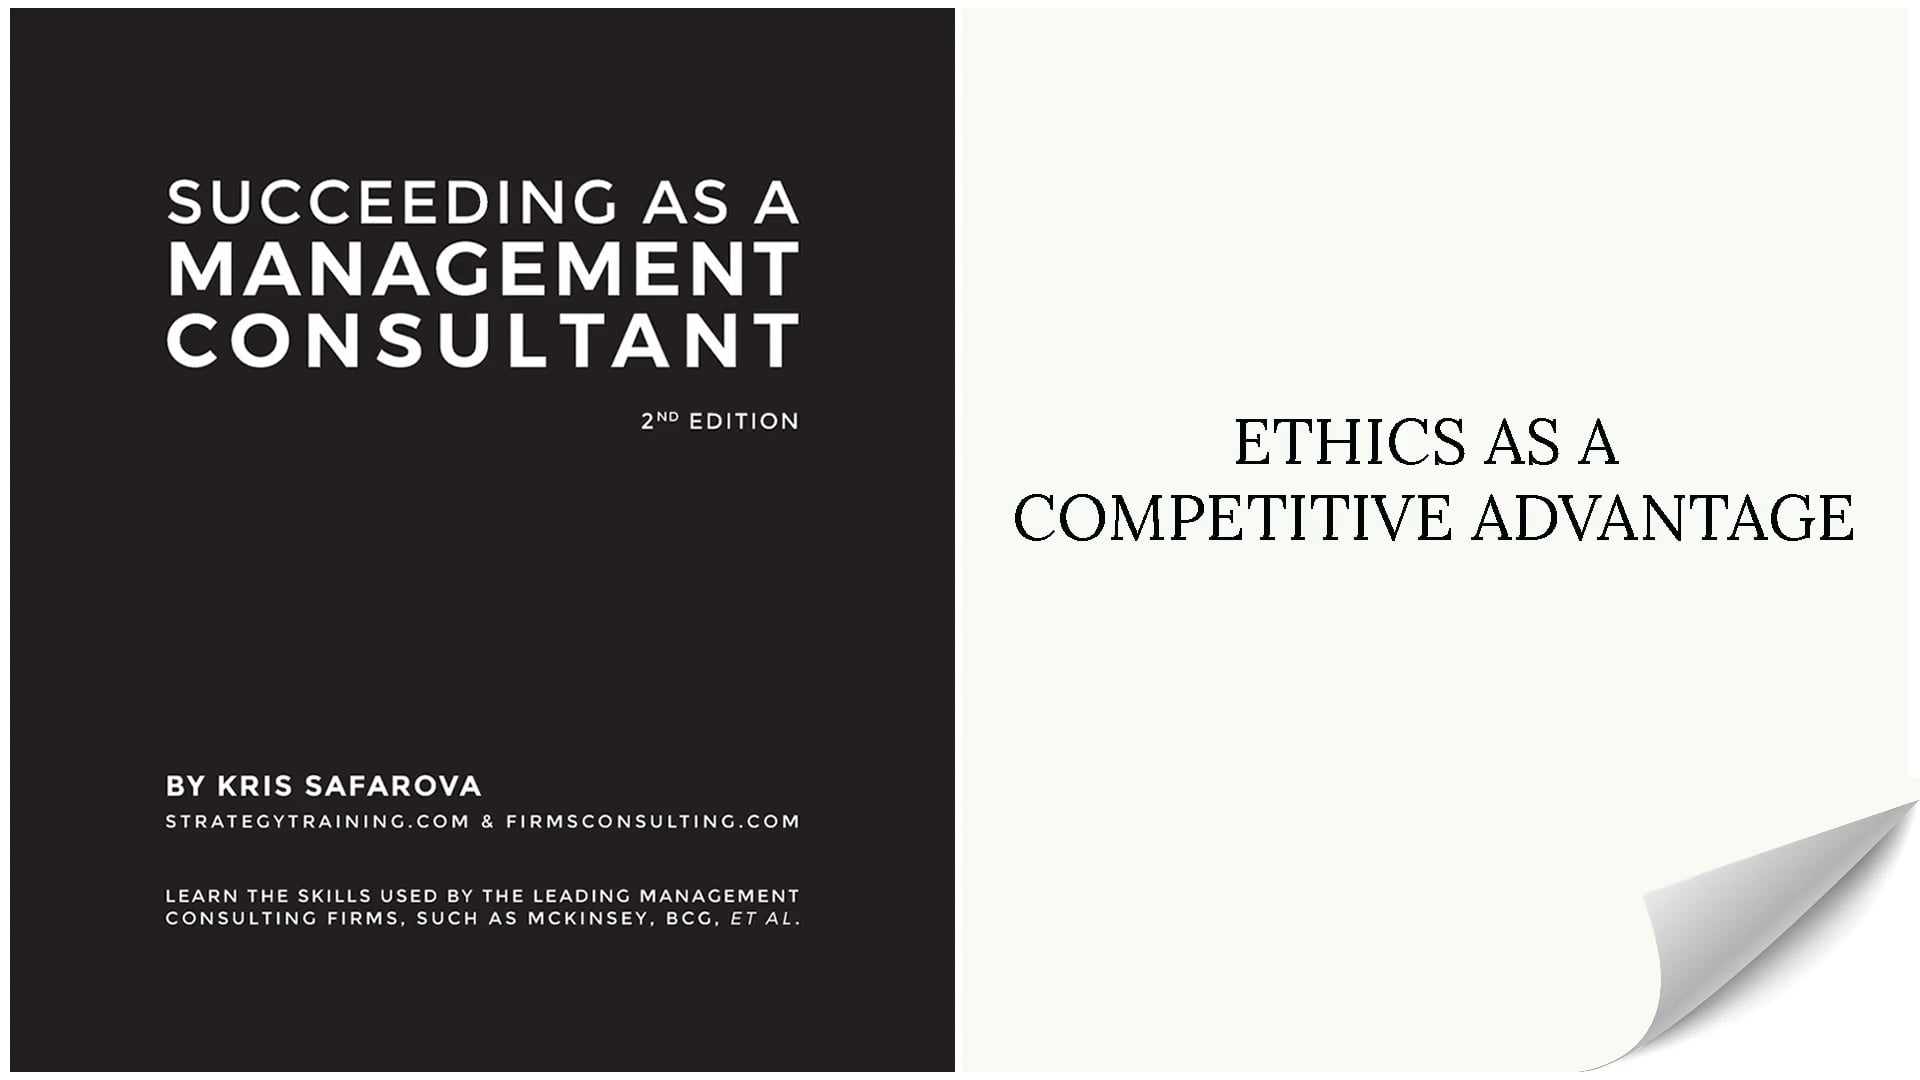 003 SAAMC Ethics as a Competitive Adv...